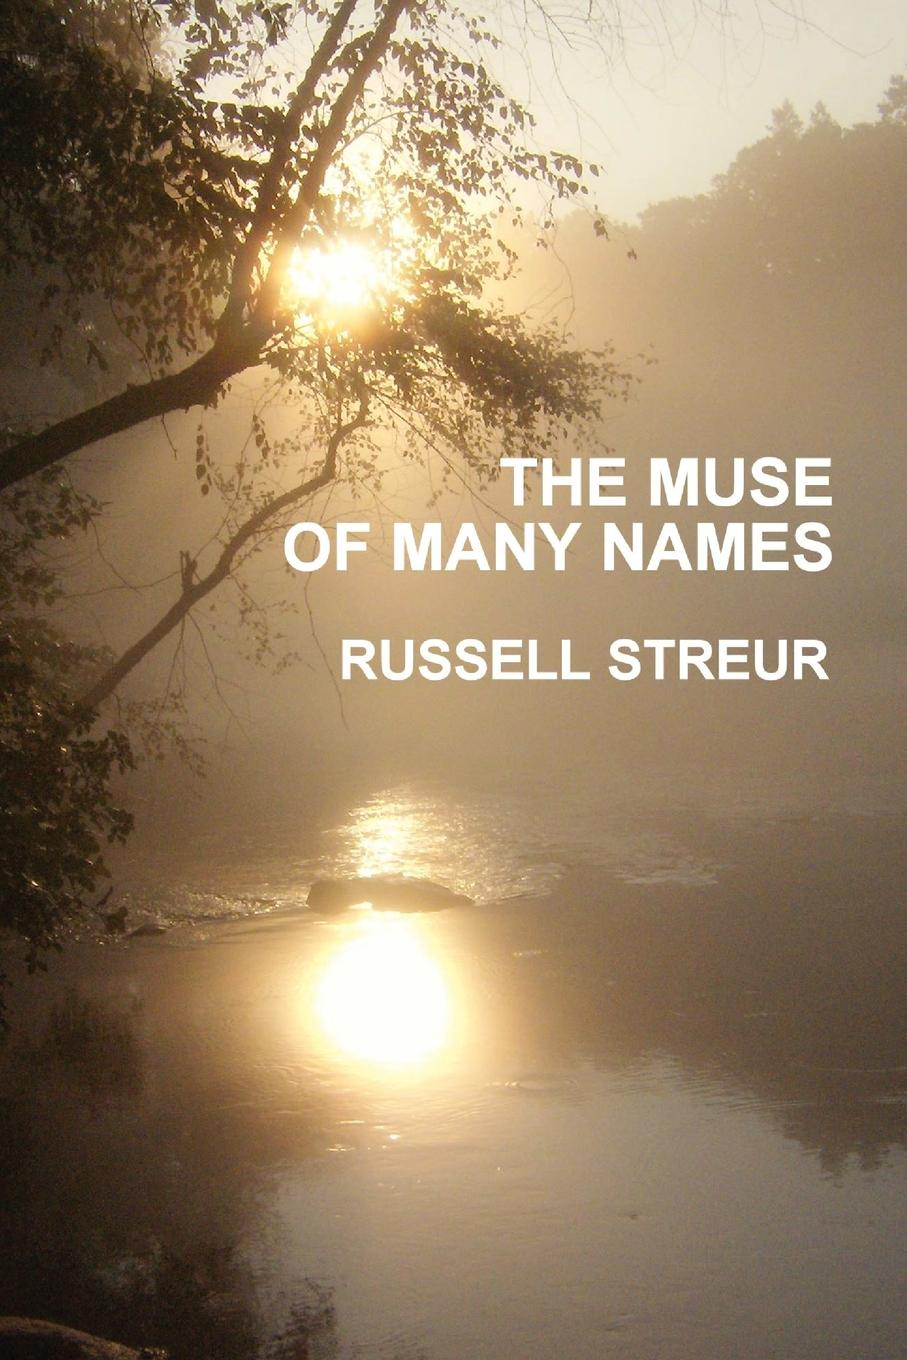 Russell Streur The Muse of Many Names burton frederick russell the mission of poubalov